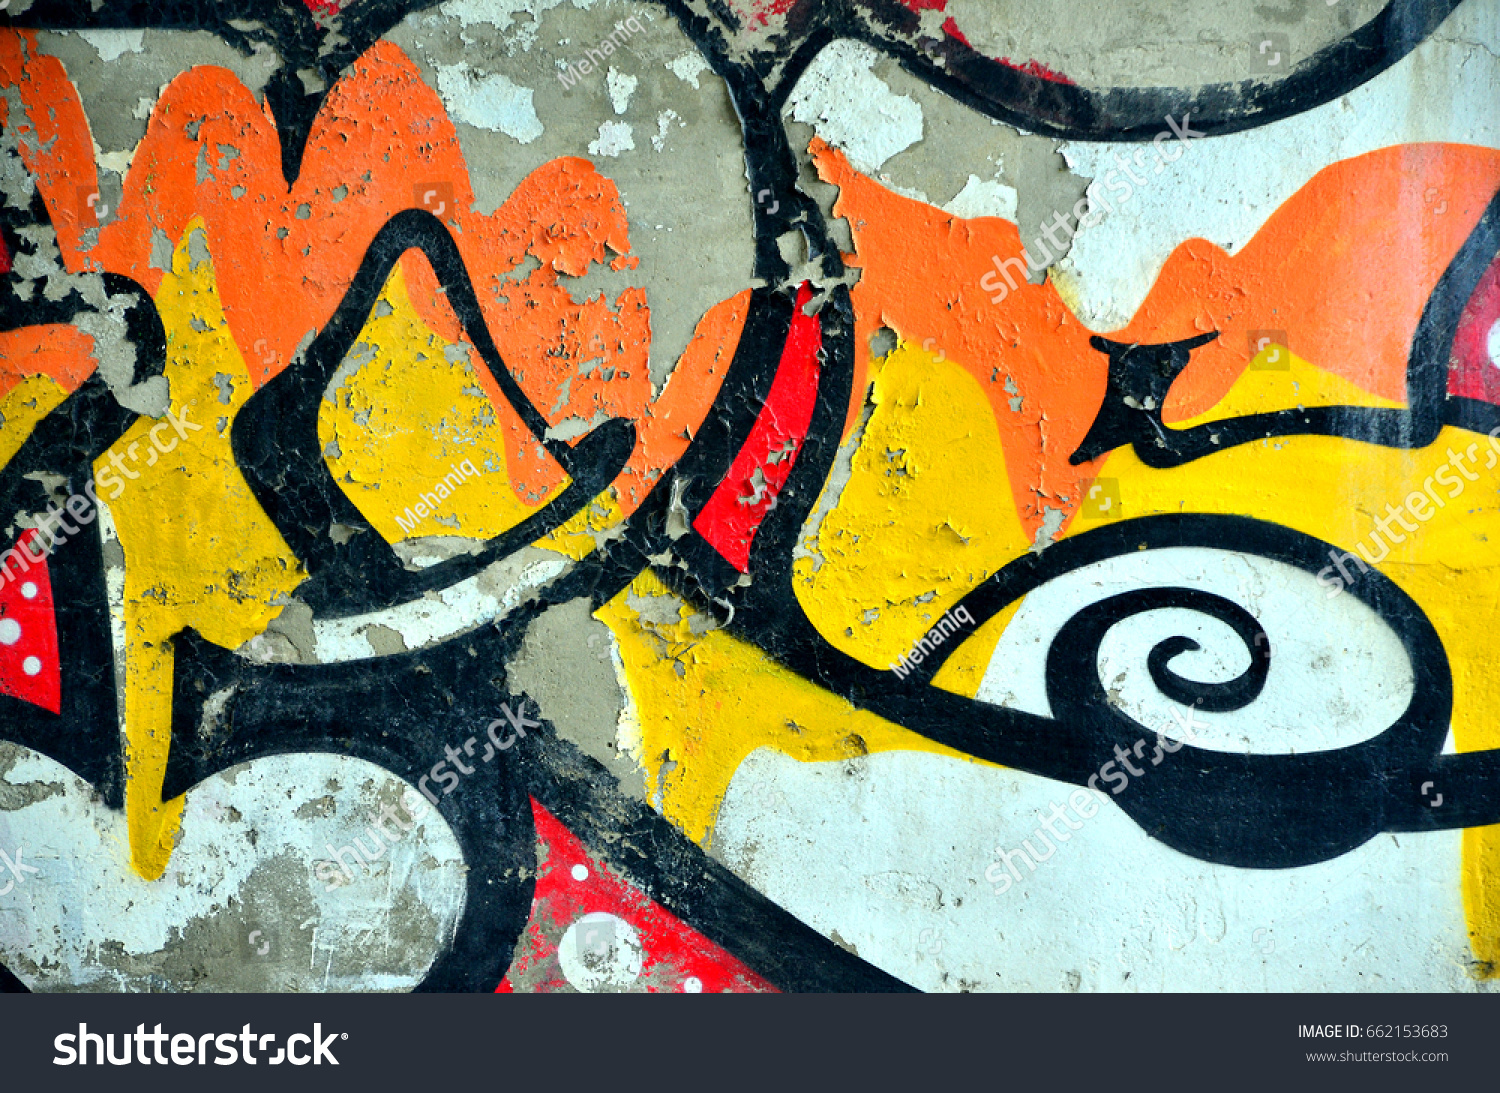 Art Under Ground Beautiful Street Art Stock Photo (Edit Now ...